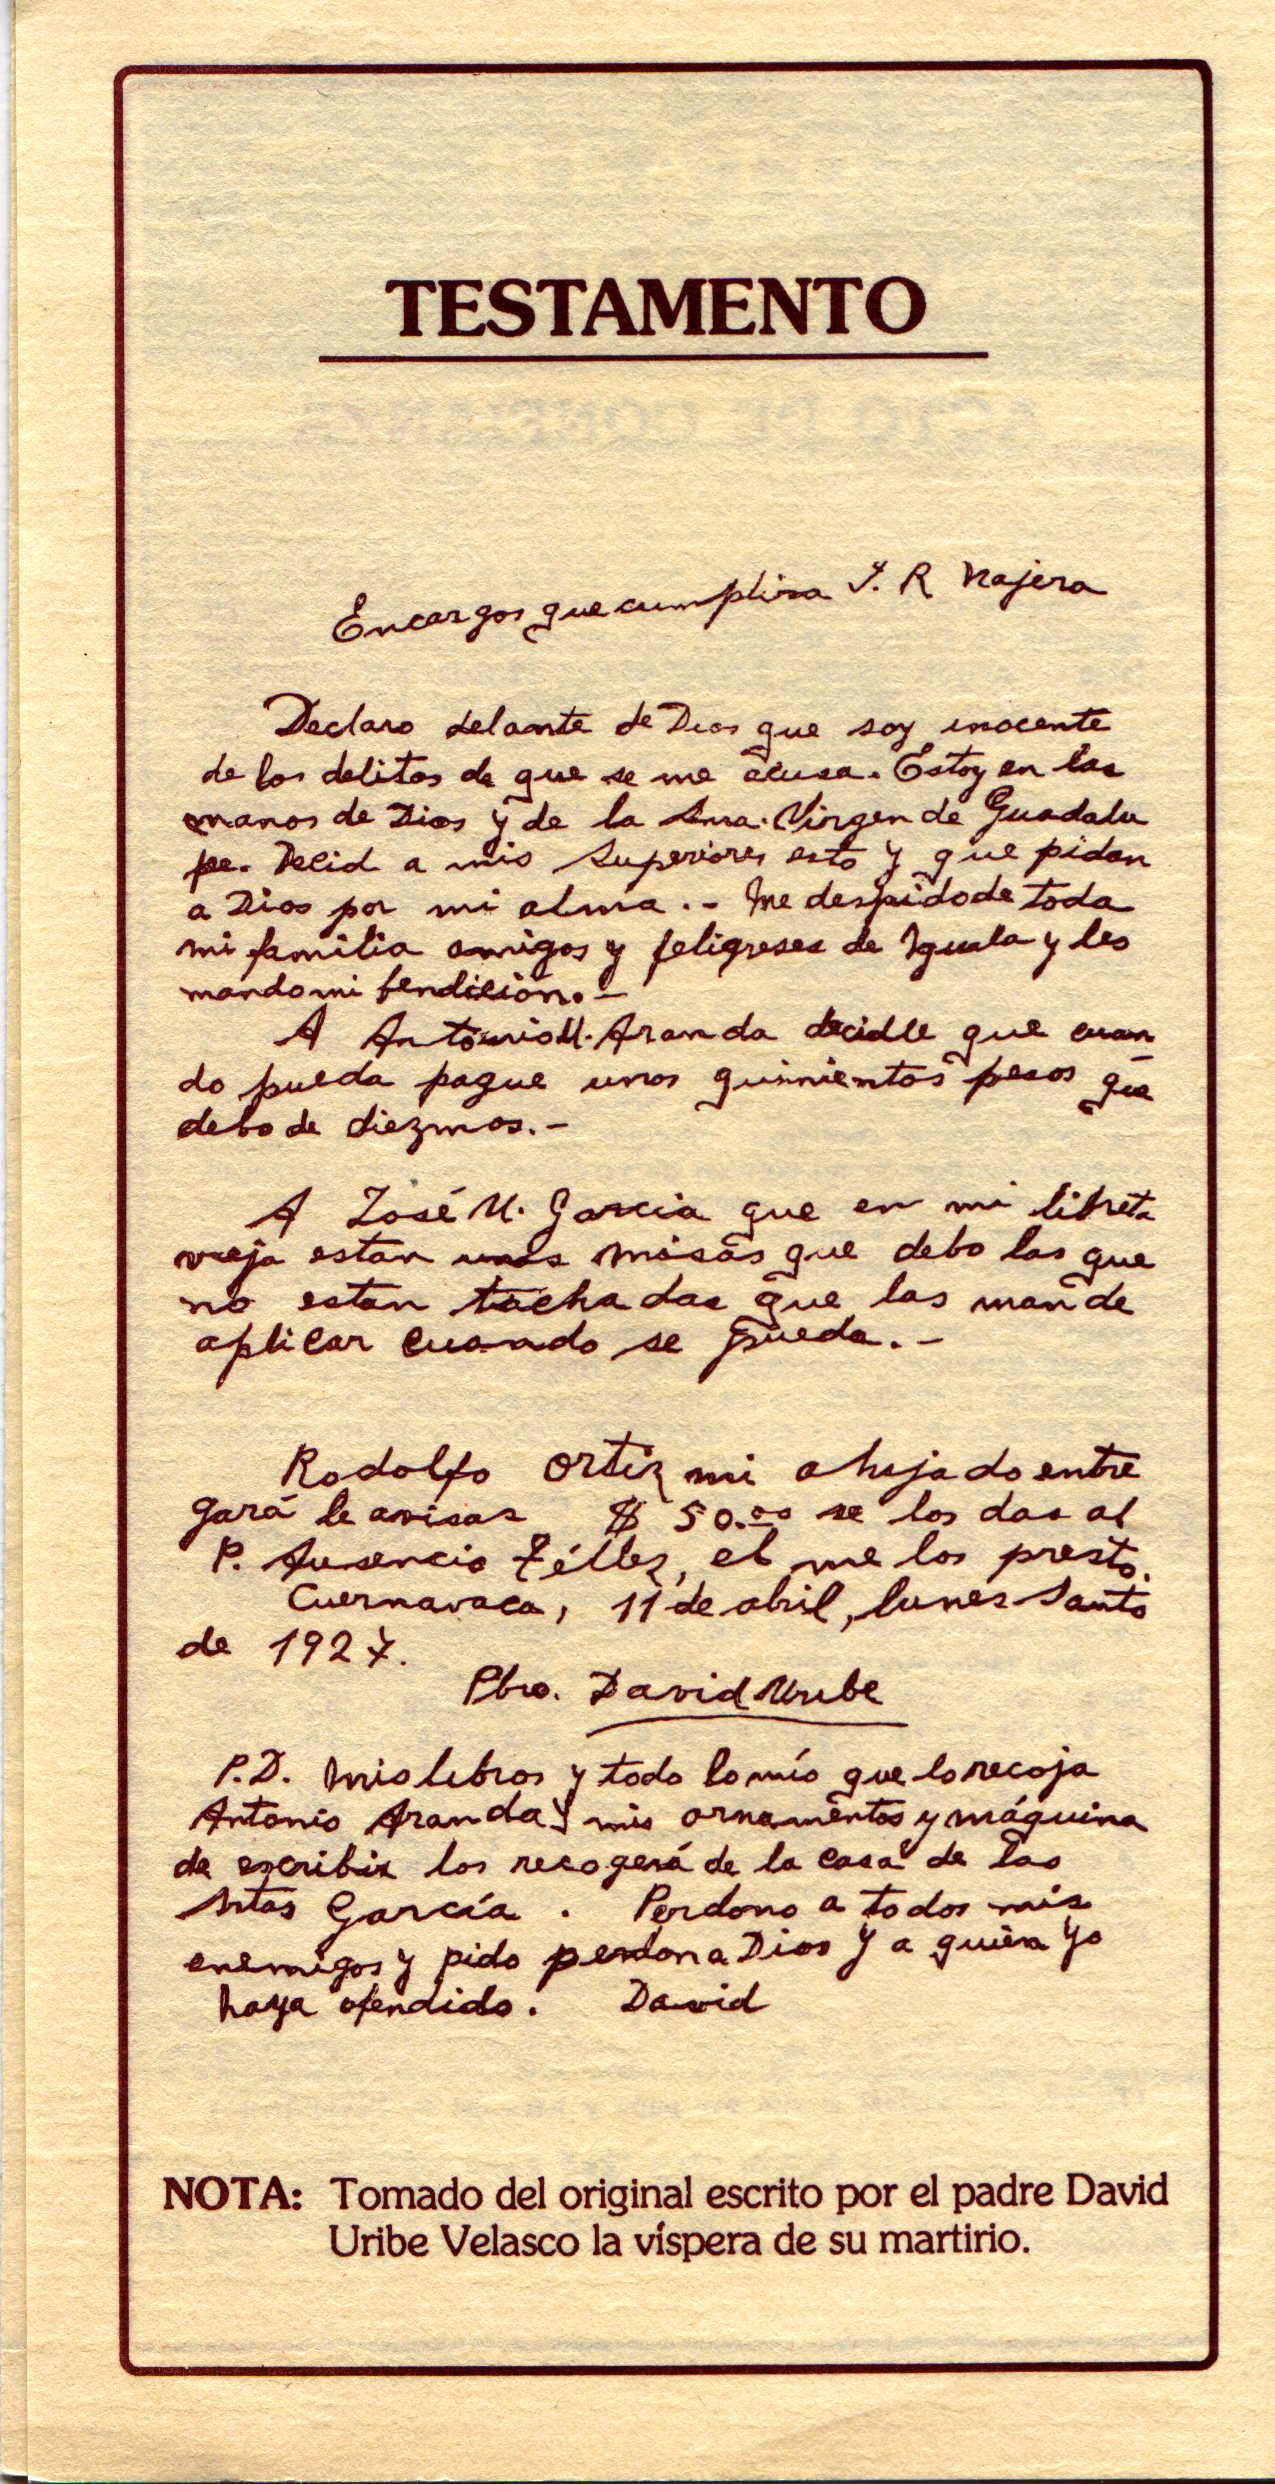 last will and testament of st david uribe